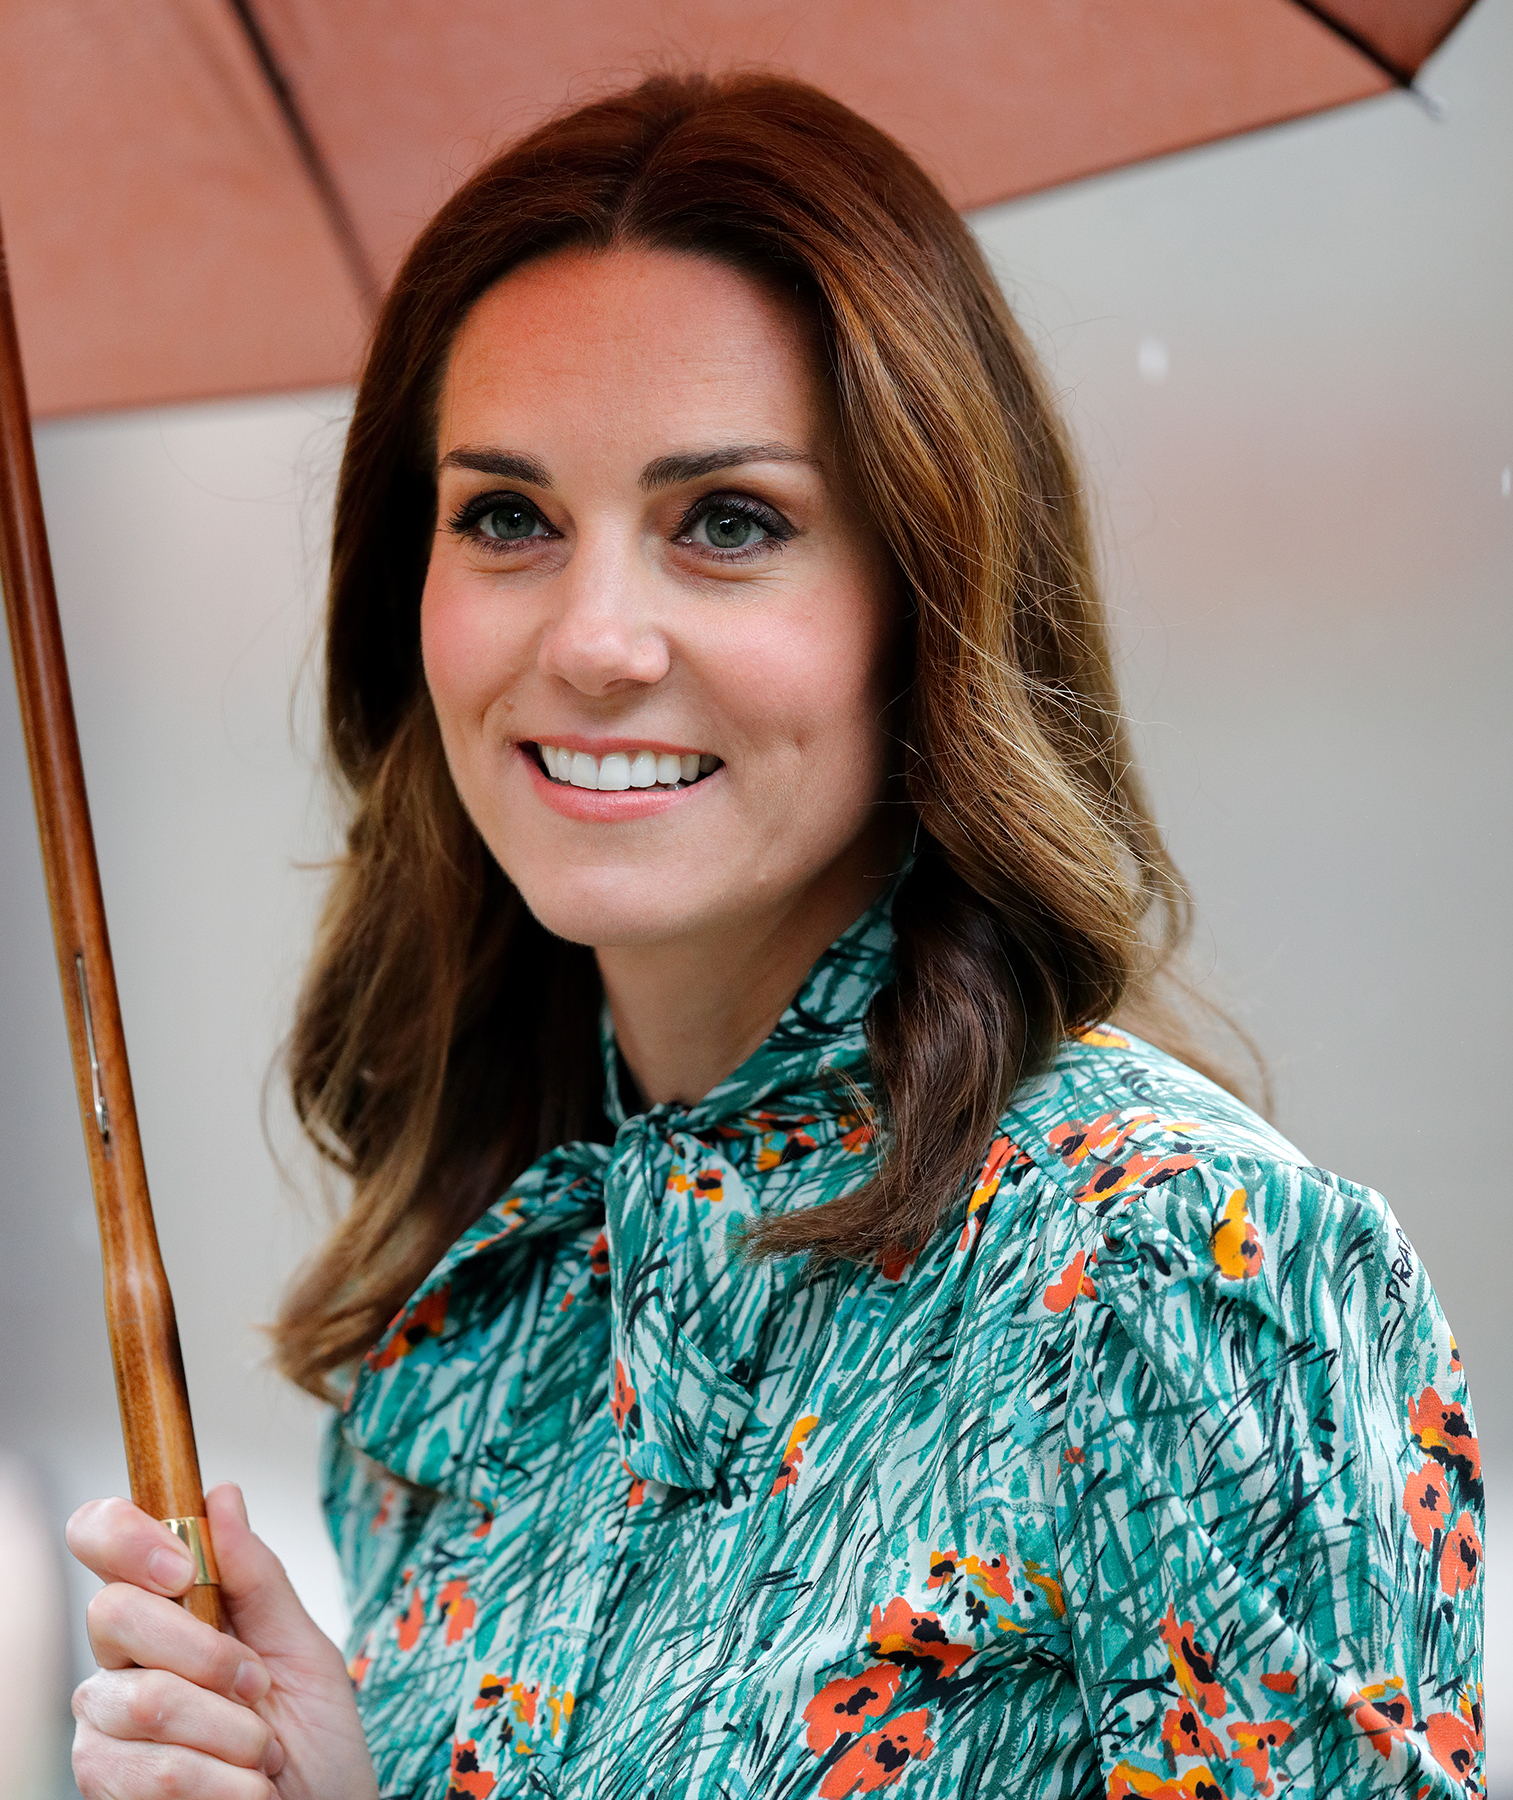 Kate Middleton with umbrella